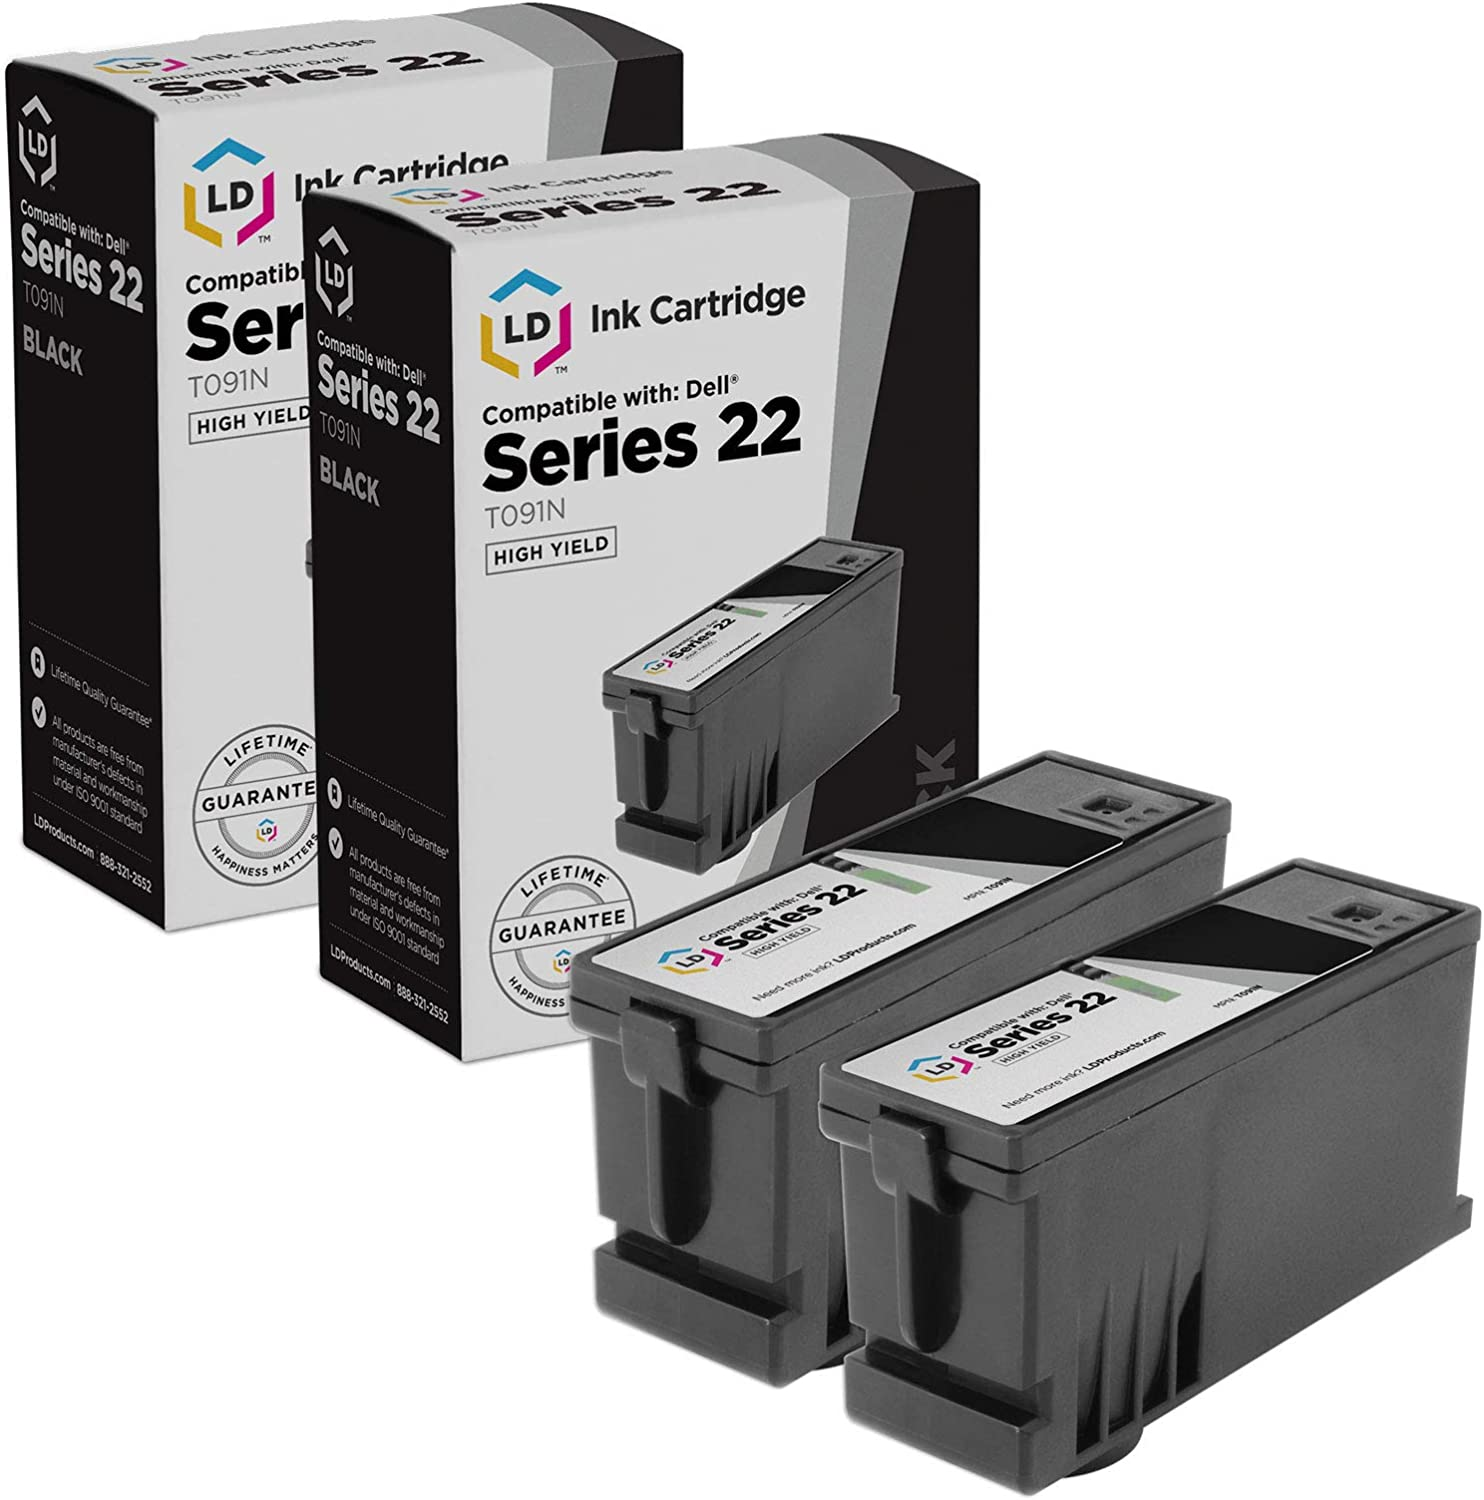 LD Products Compatible Ink Cartridge Replacement for Dell T091N Series 22 High Yield (Black, 2-Pack)